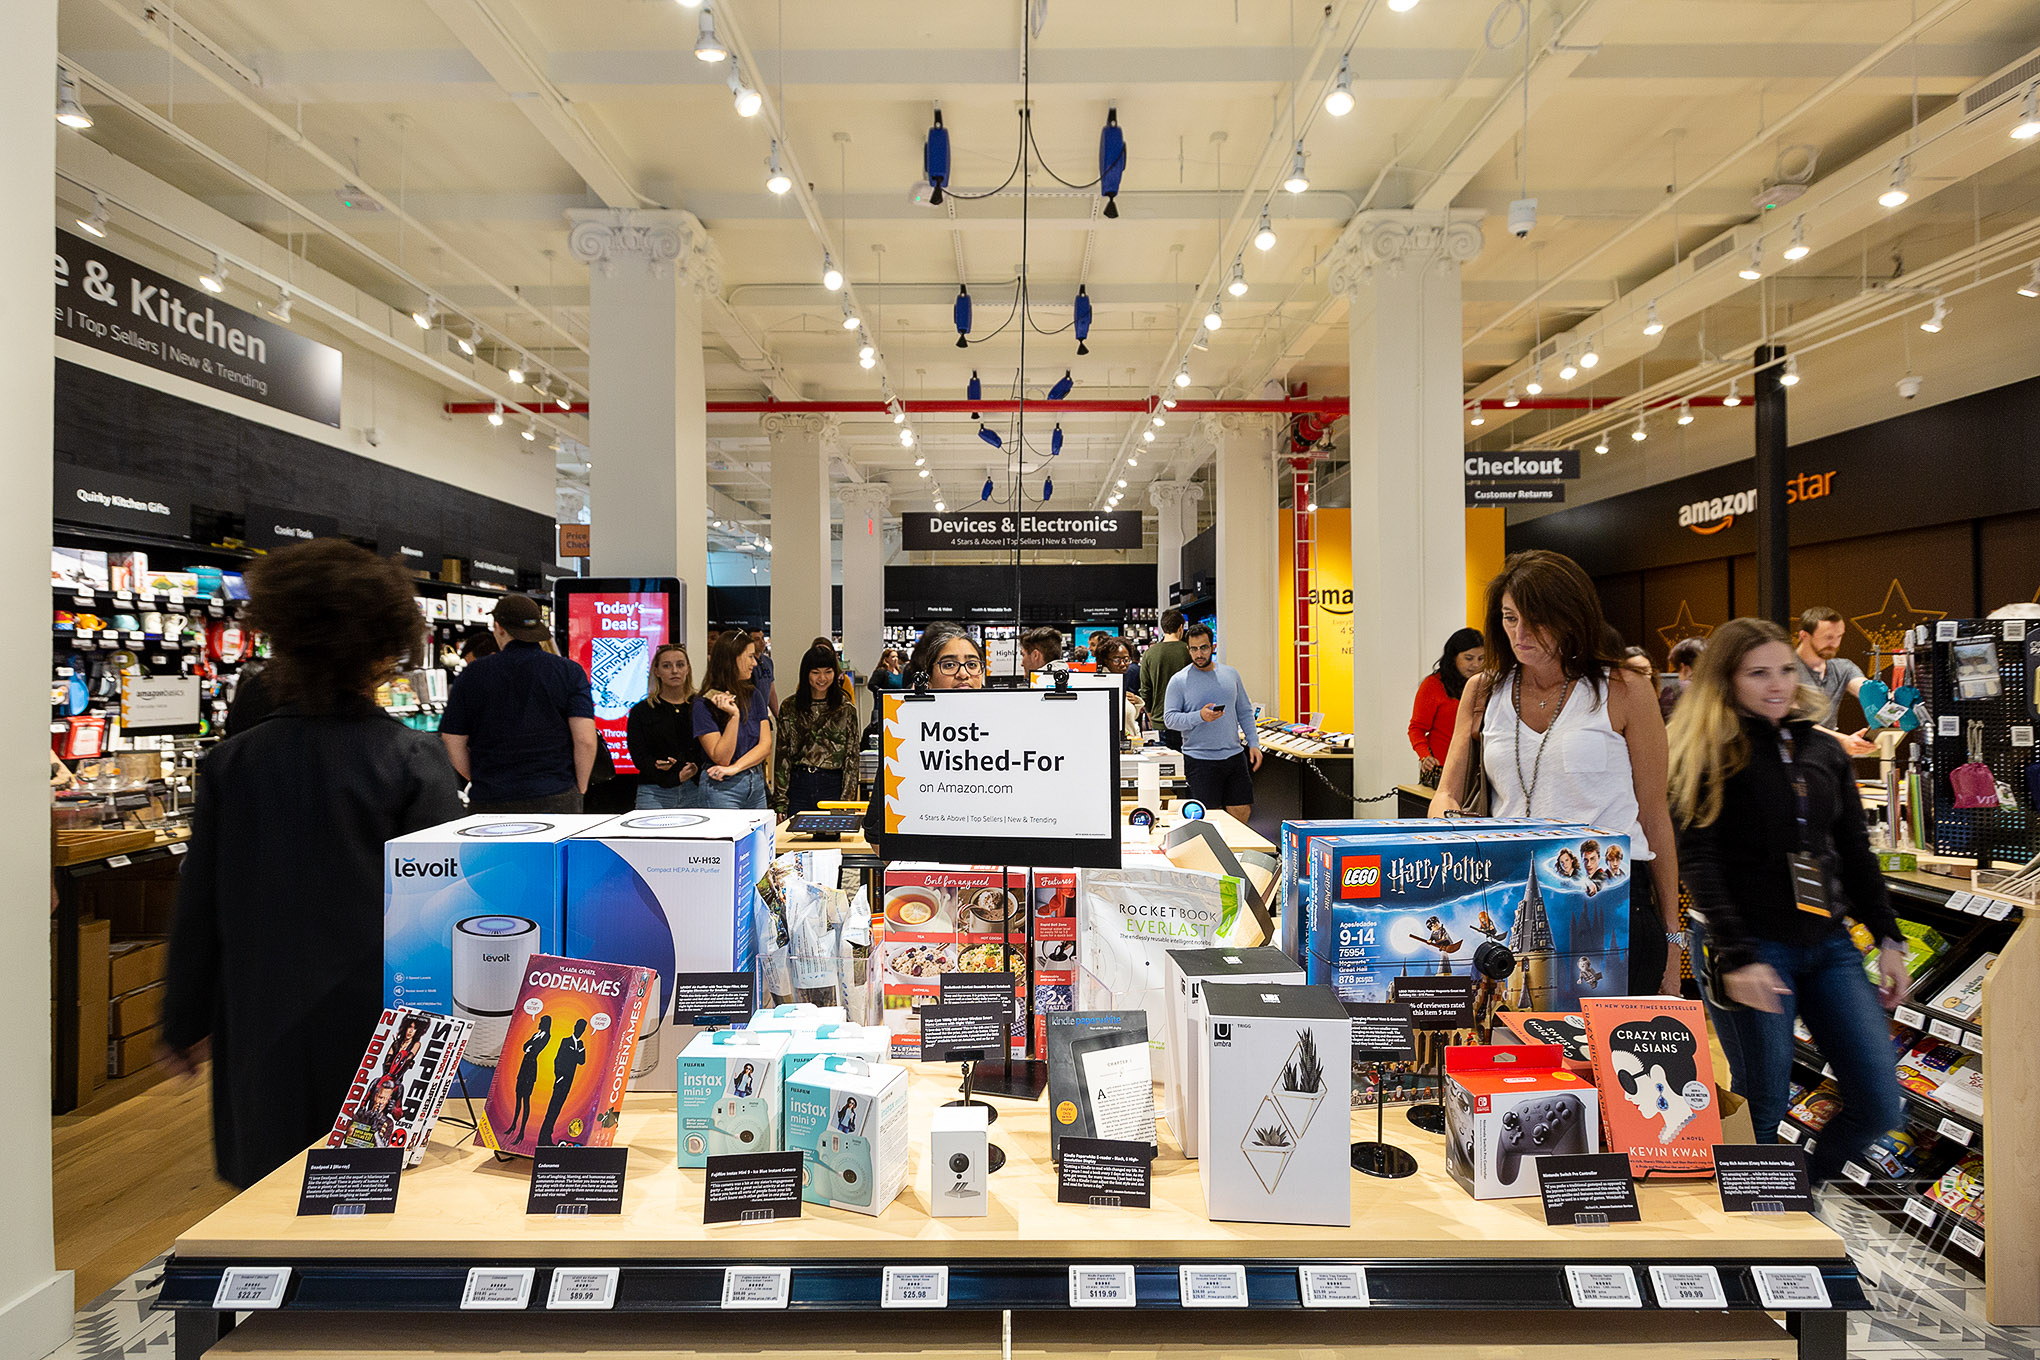 Opening day at the Amazon 4-Star brick and mortar store located in Soho in New York City.